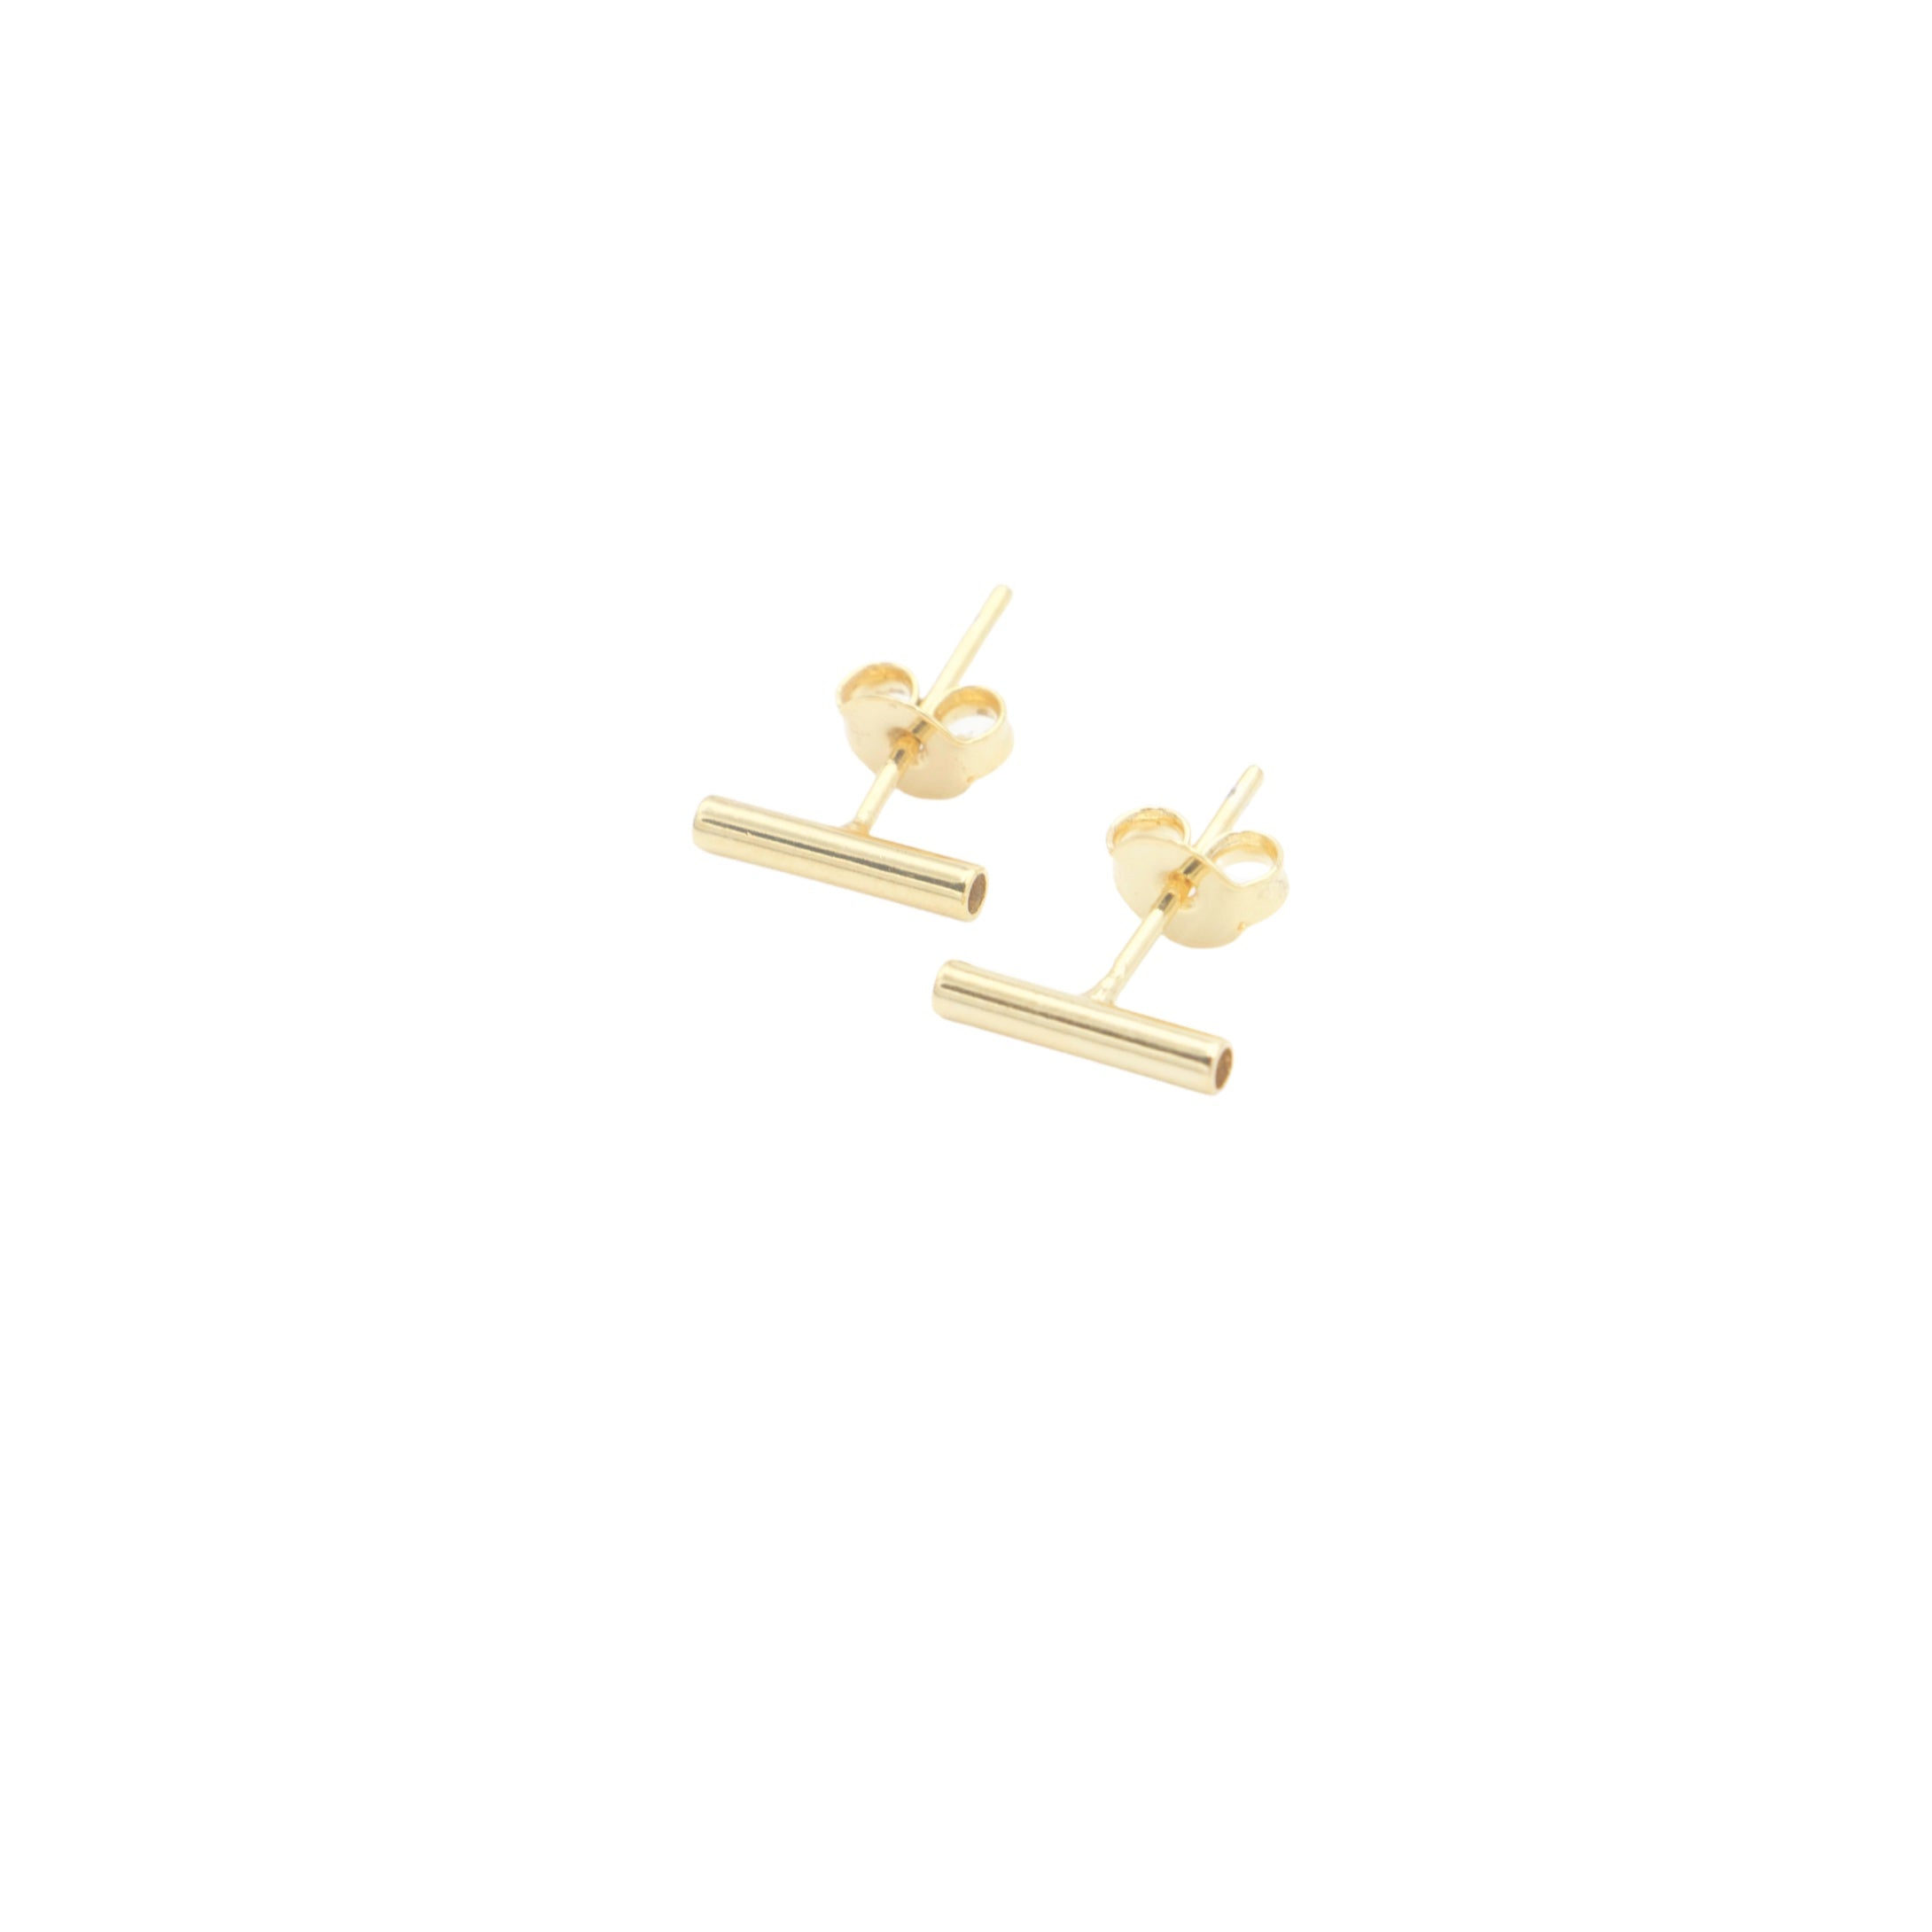 If you're an earring lover you have to own a pair of AW Boutique's Bar Stud Earrings!  These are a must have that can be worn alone or layered across multiple piercings.  The hollow design makes them a unique piece that sits comfortably against the ear, and can be worn either vertically or horizontally.